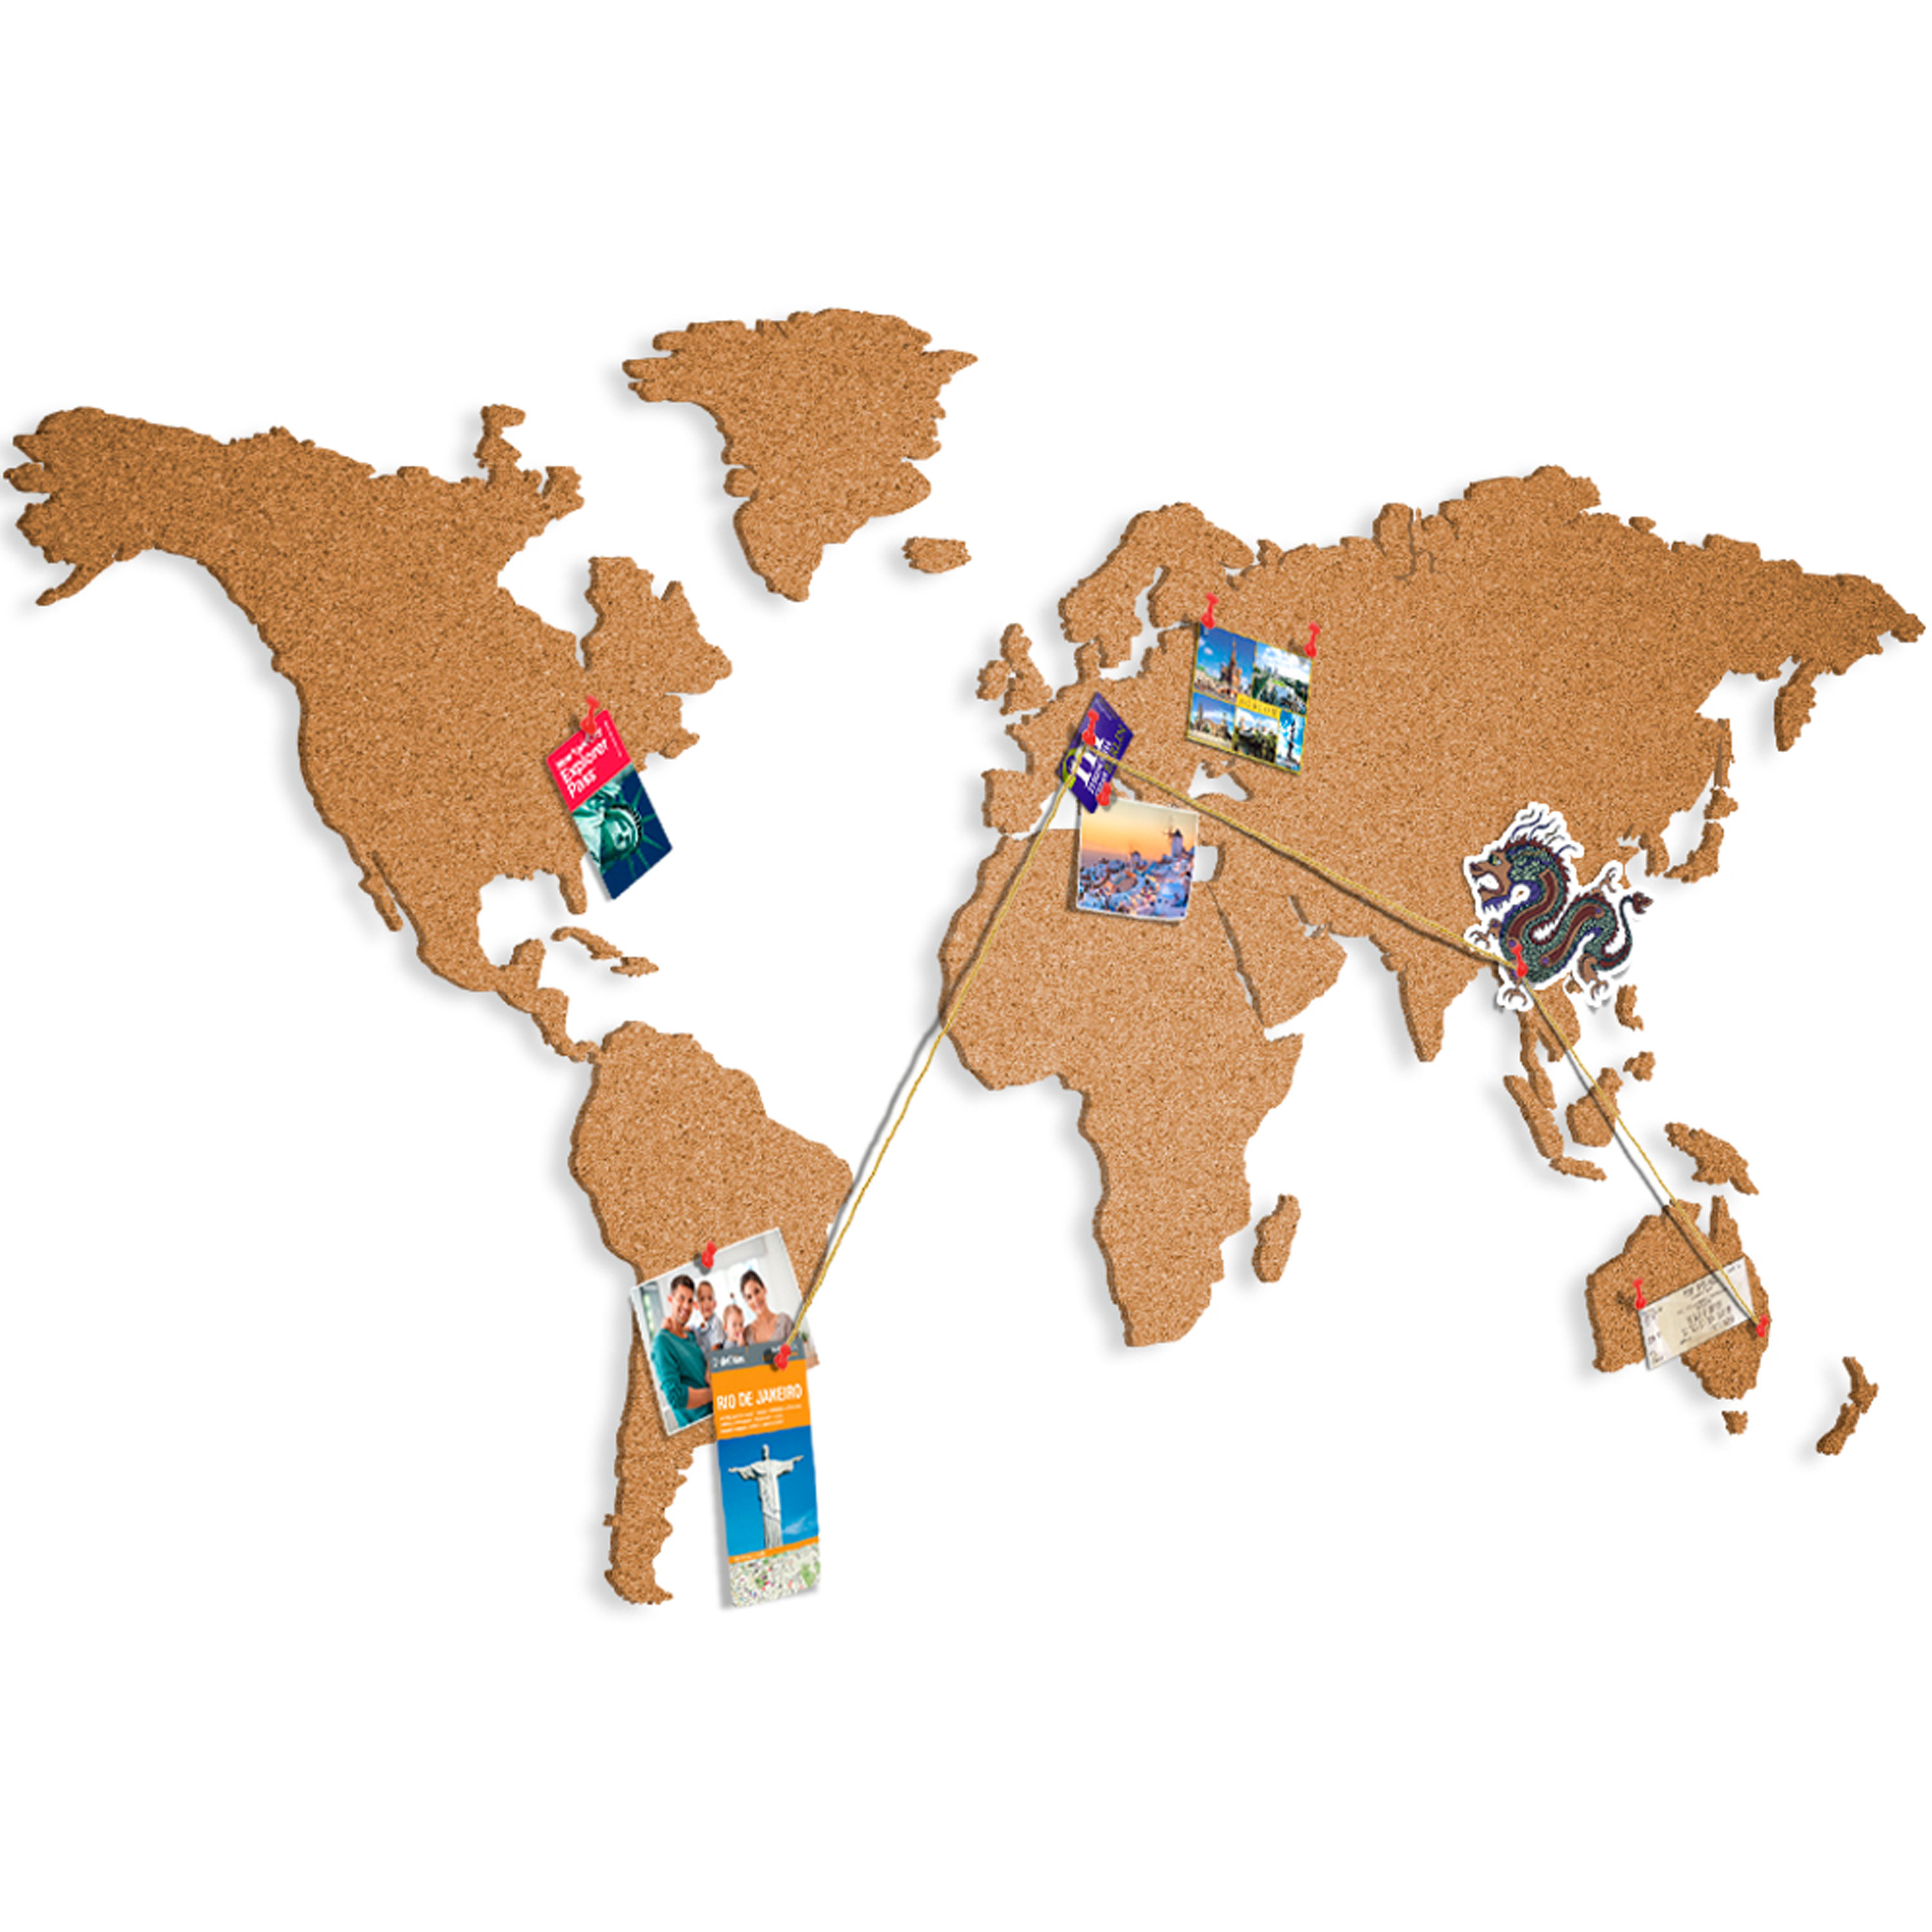 WORLD MAP SELF ADHESIVE CORK BOARD SOMETHING NEW MULTISTICK